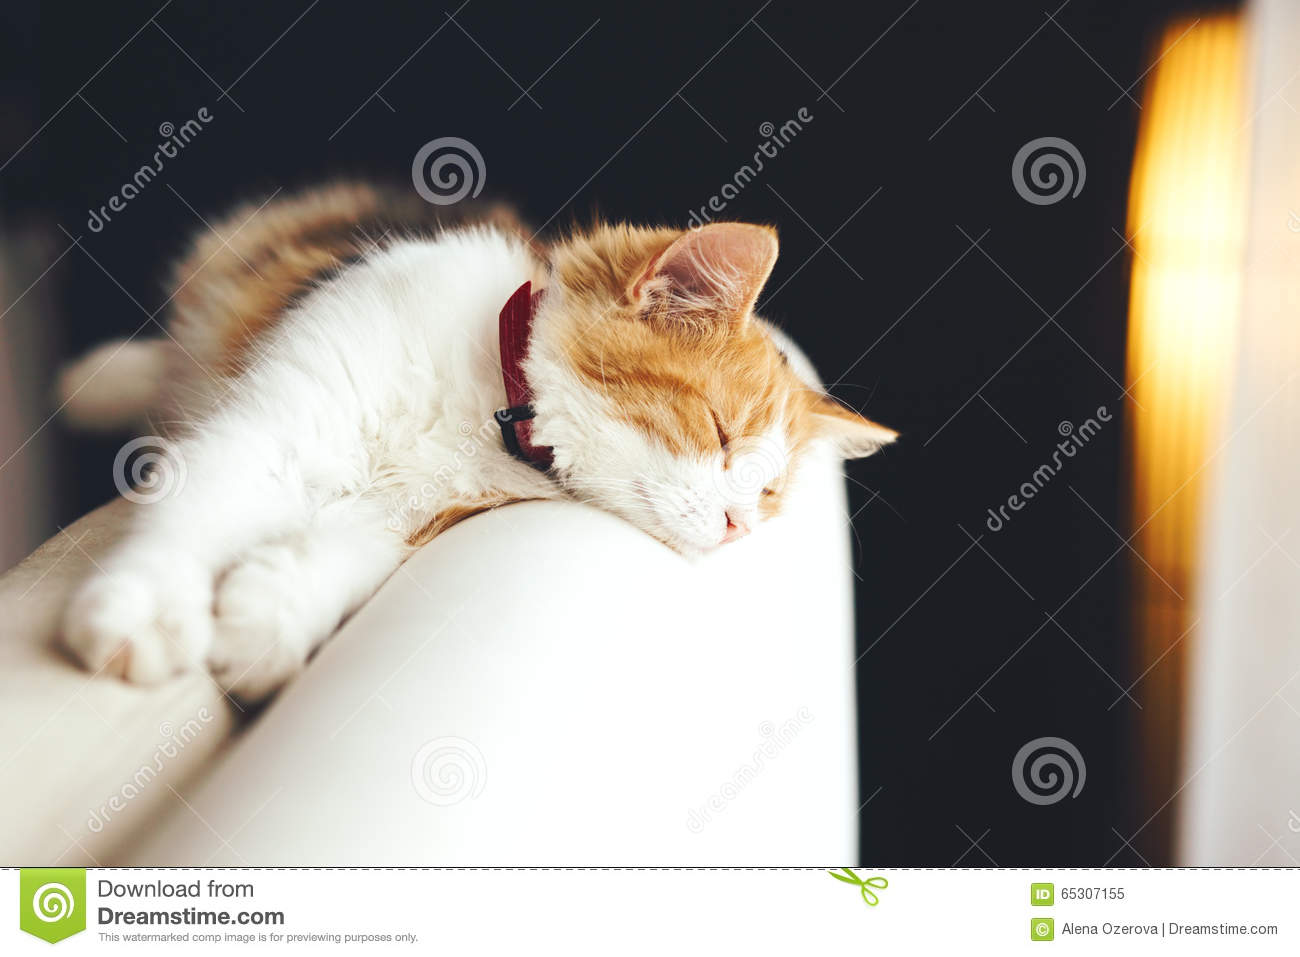 Cat sleeps at home